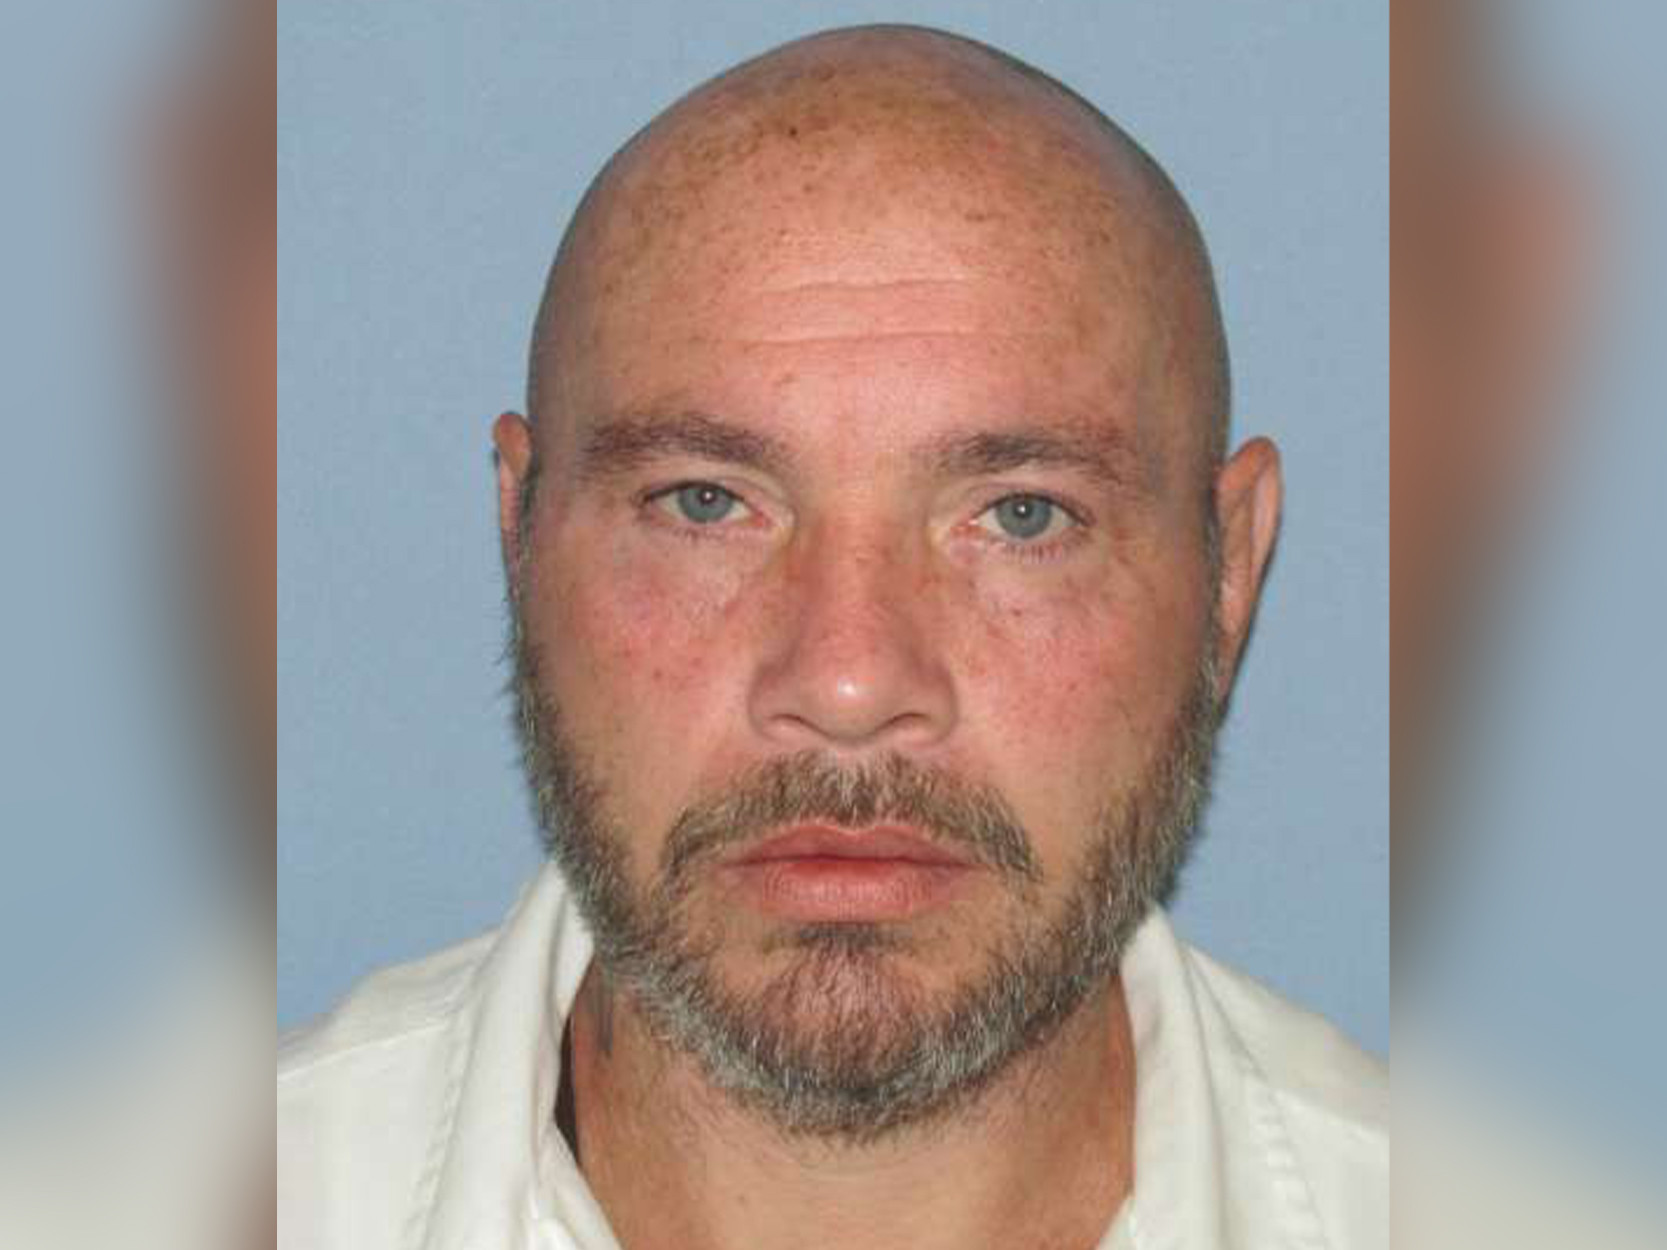 Convicted murderer escapes from Alabama work release